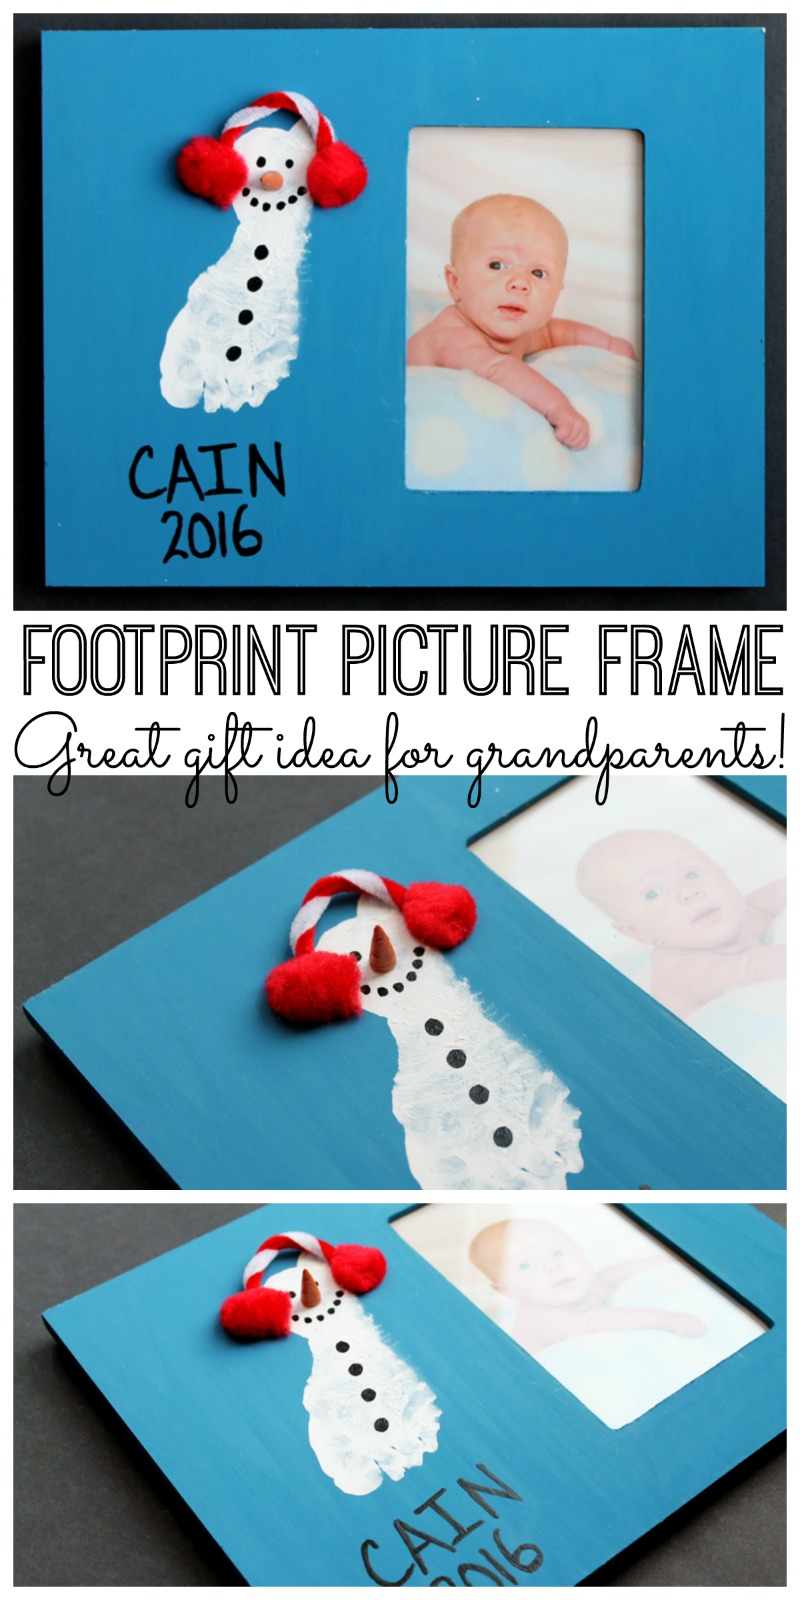 baby photo frames with a footprint